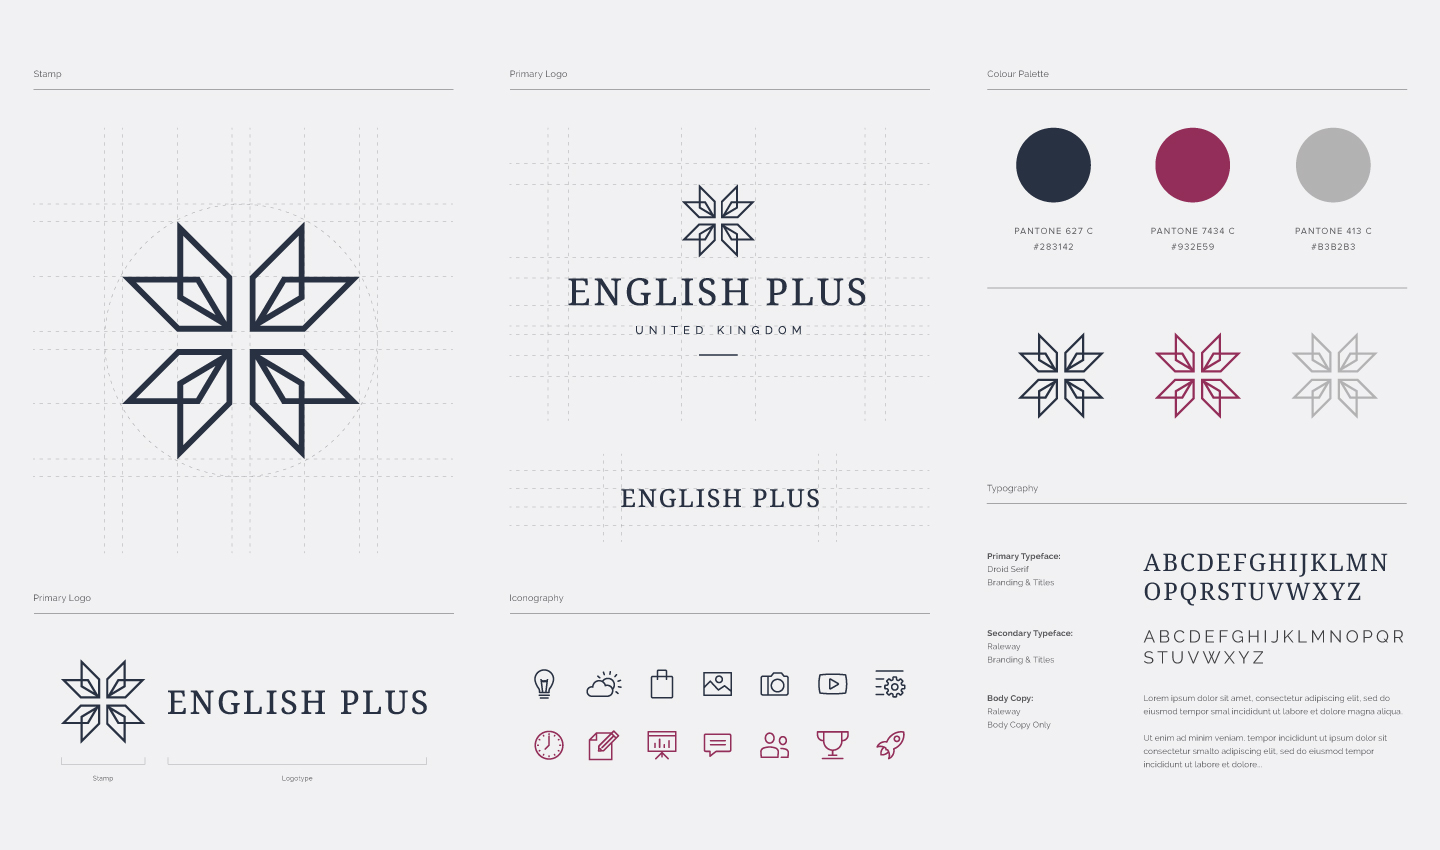 english-plus-brand-guidelines-1 - Long Story Short Design